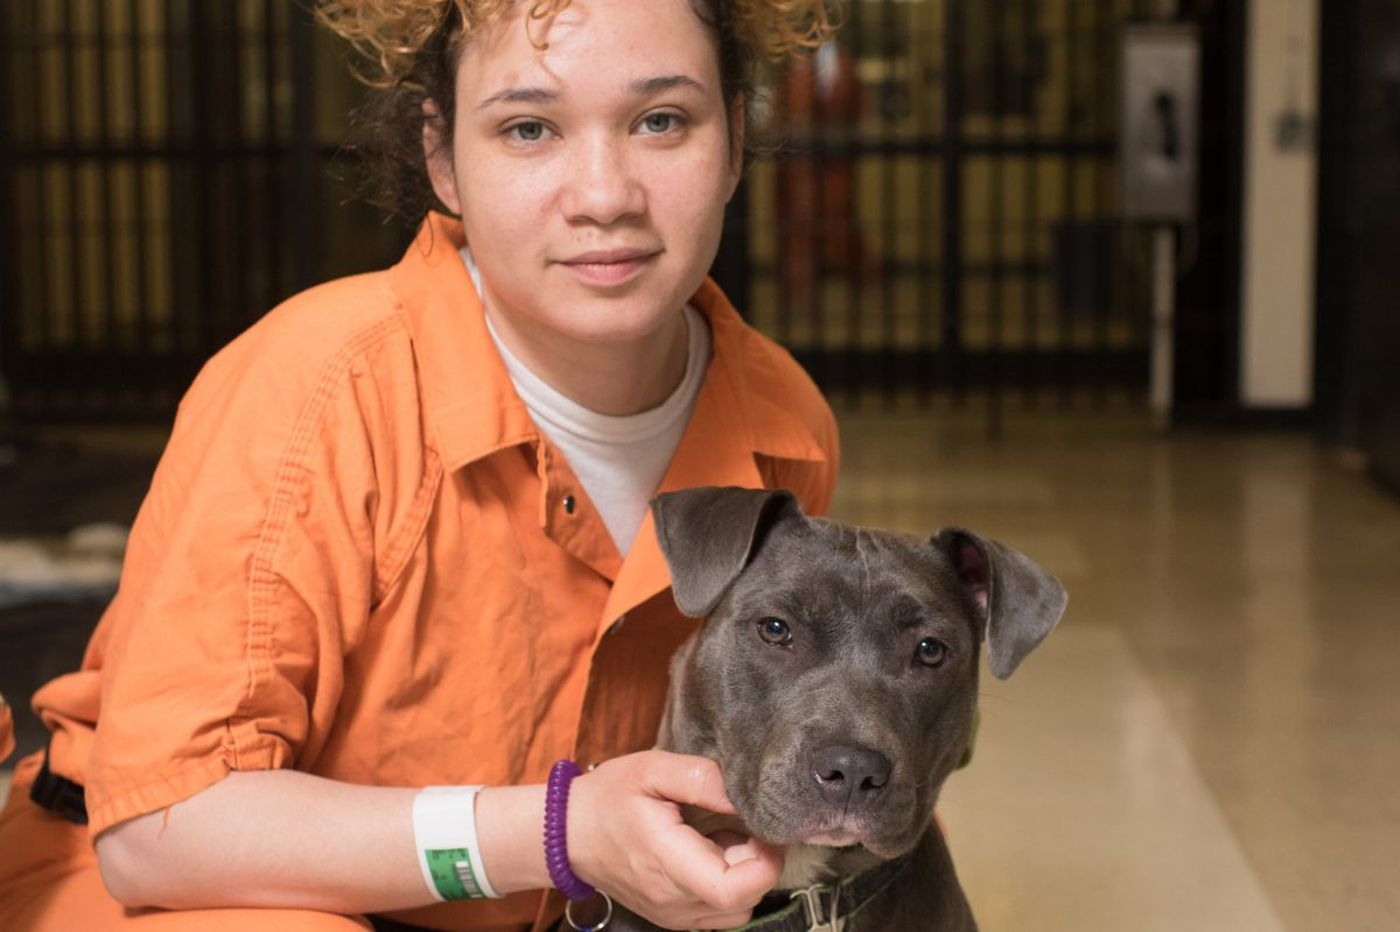 A woman in jail, a dog on death row: When Bryon met Olympia, a forsaken pit mix